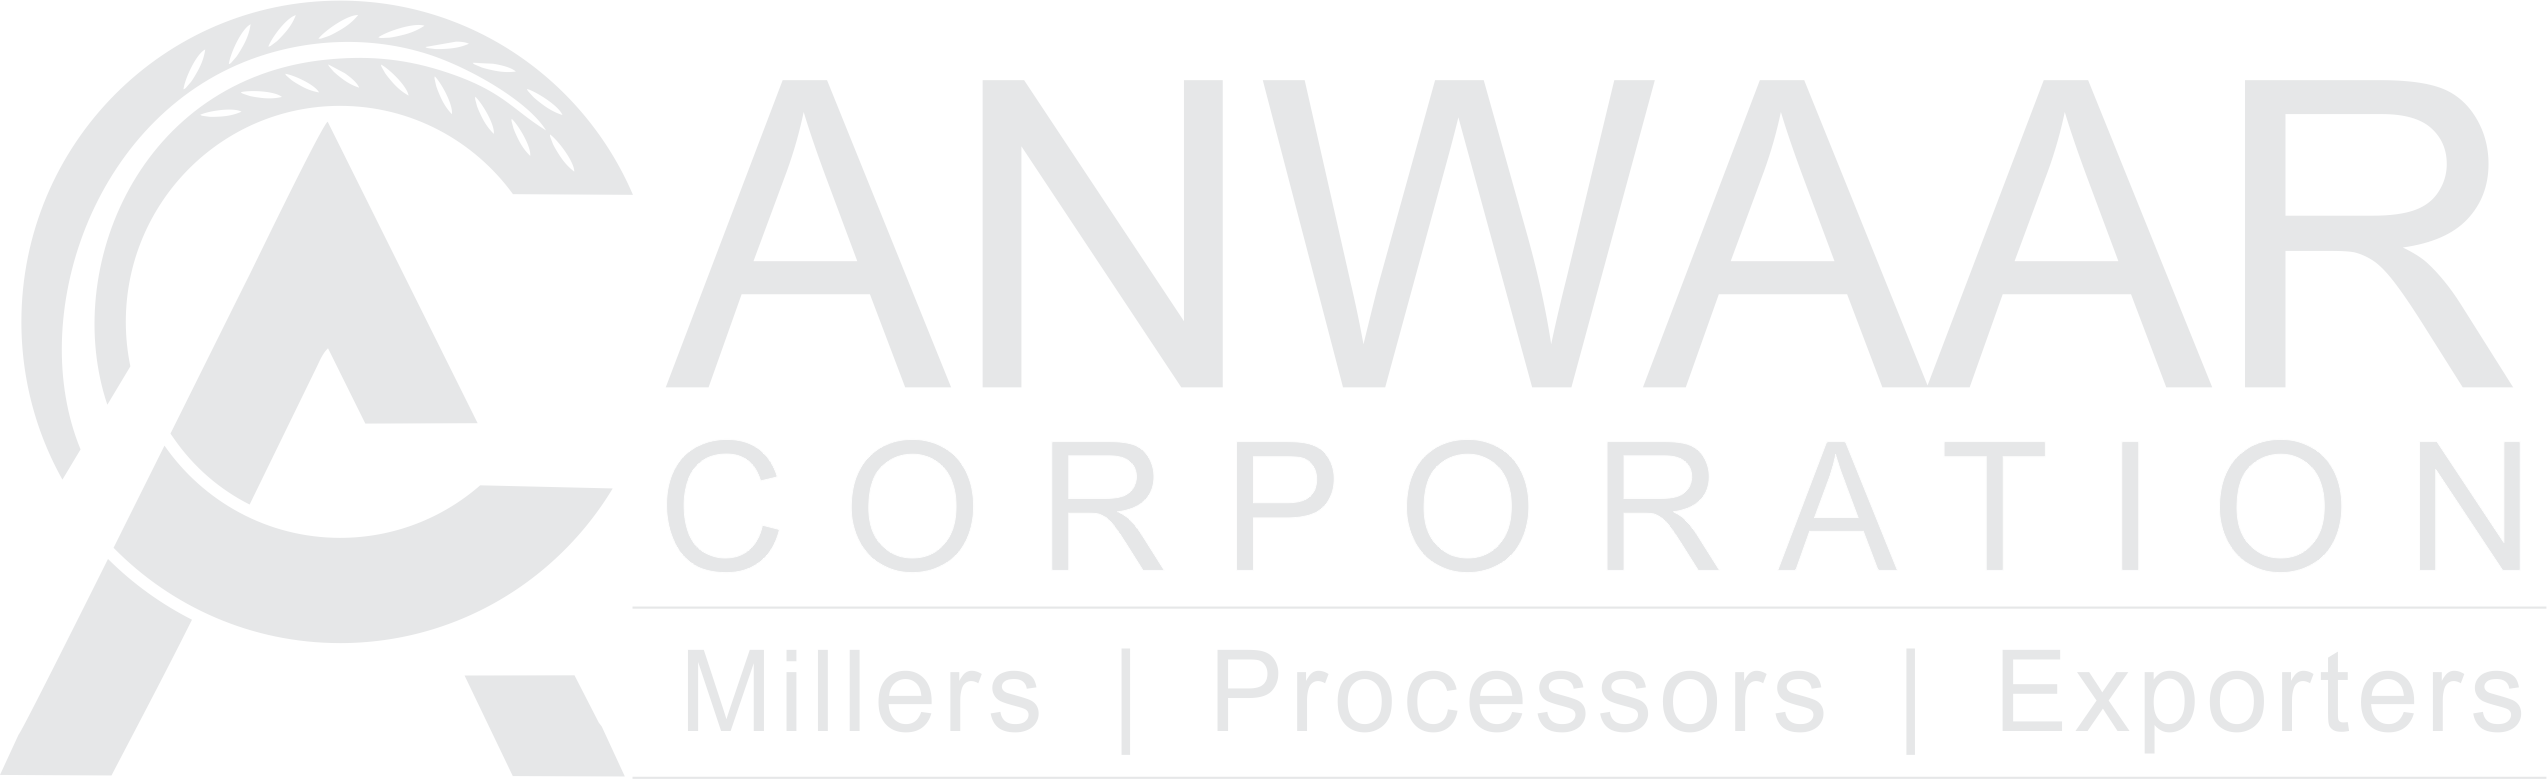 ANWAAR CARPORATION